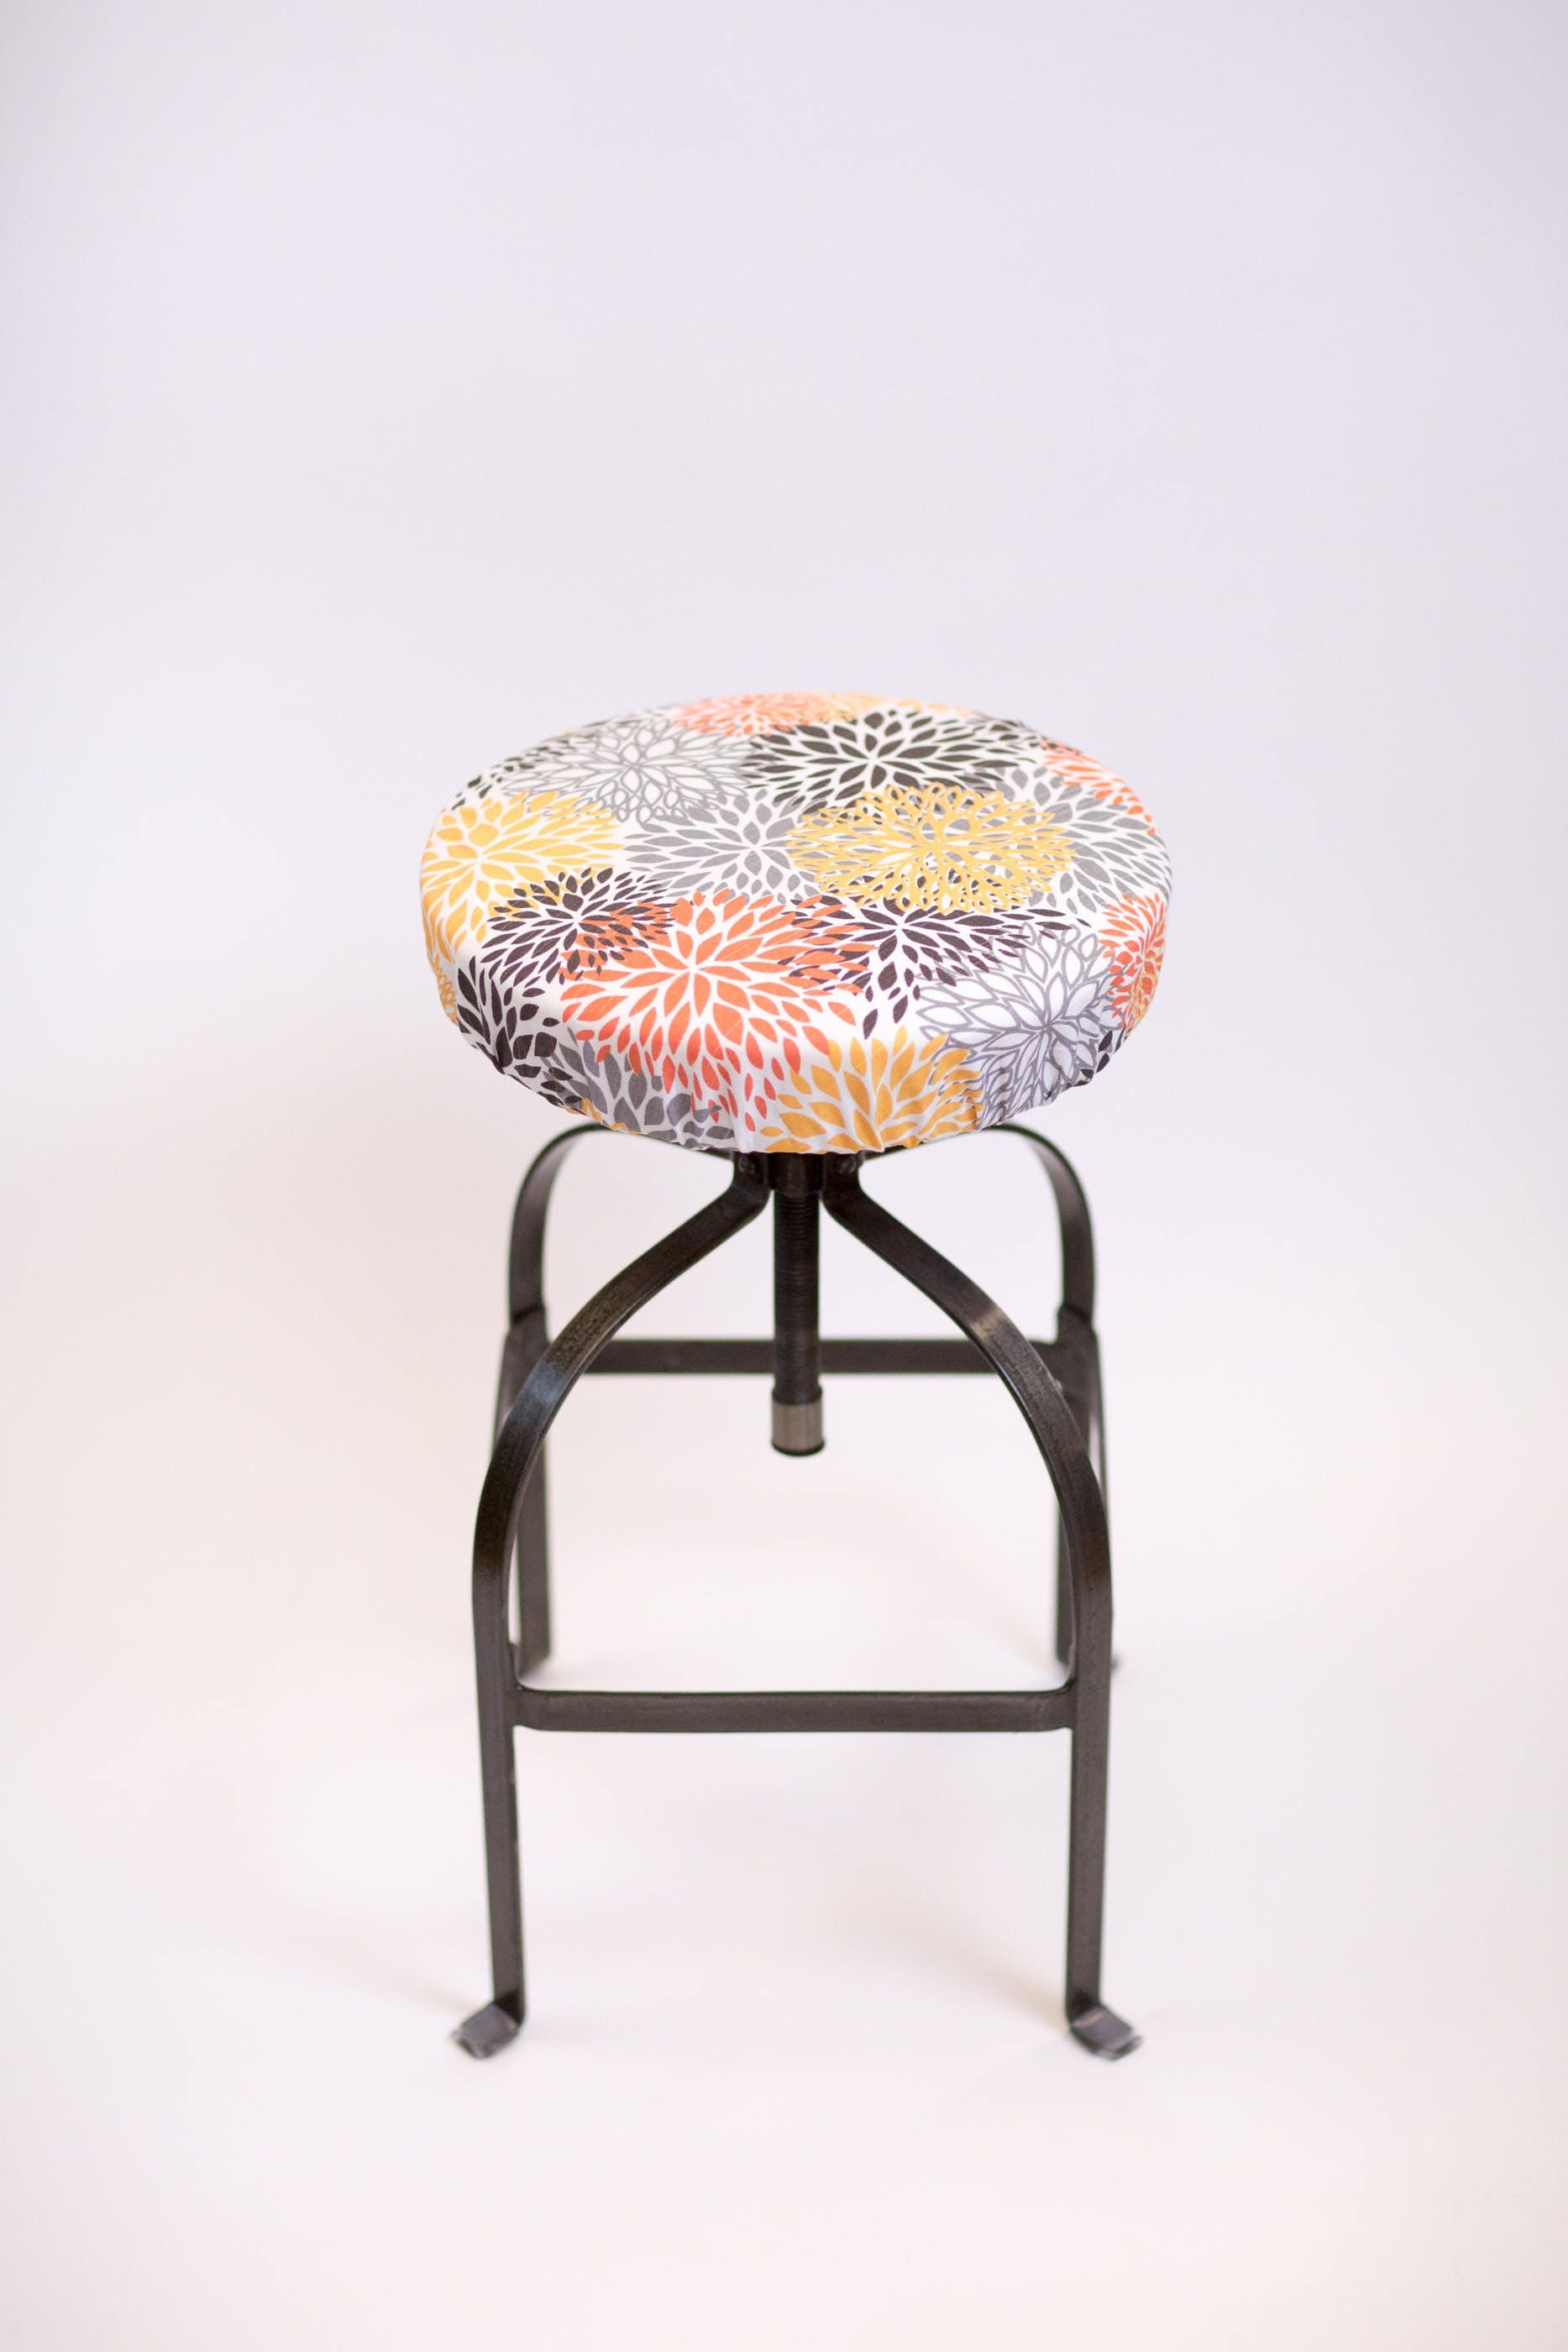 Round barstool cover elasticized seat cover counter stool : ilfullxfull13693202413ddq from www.etsy.com size 1867 x 2800 jpeg 244kB